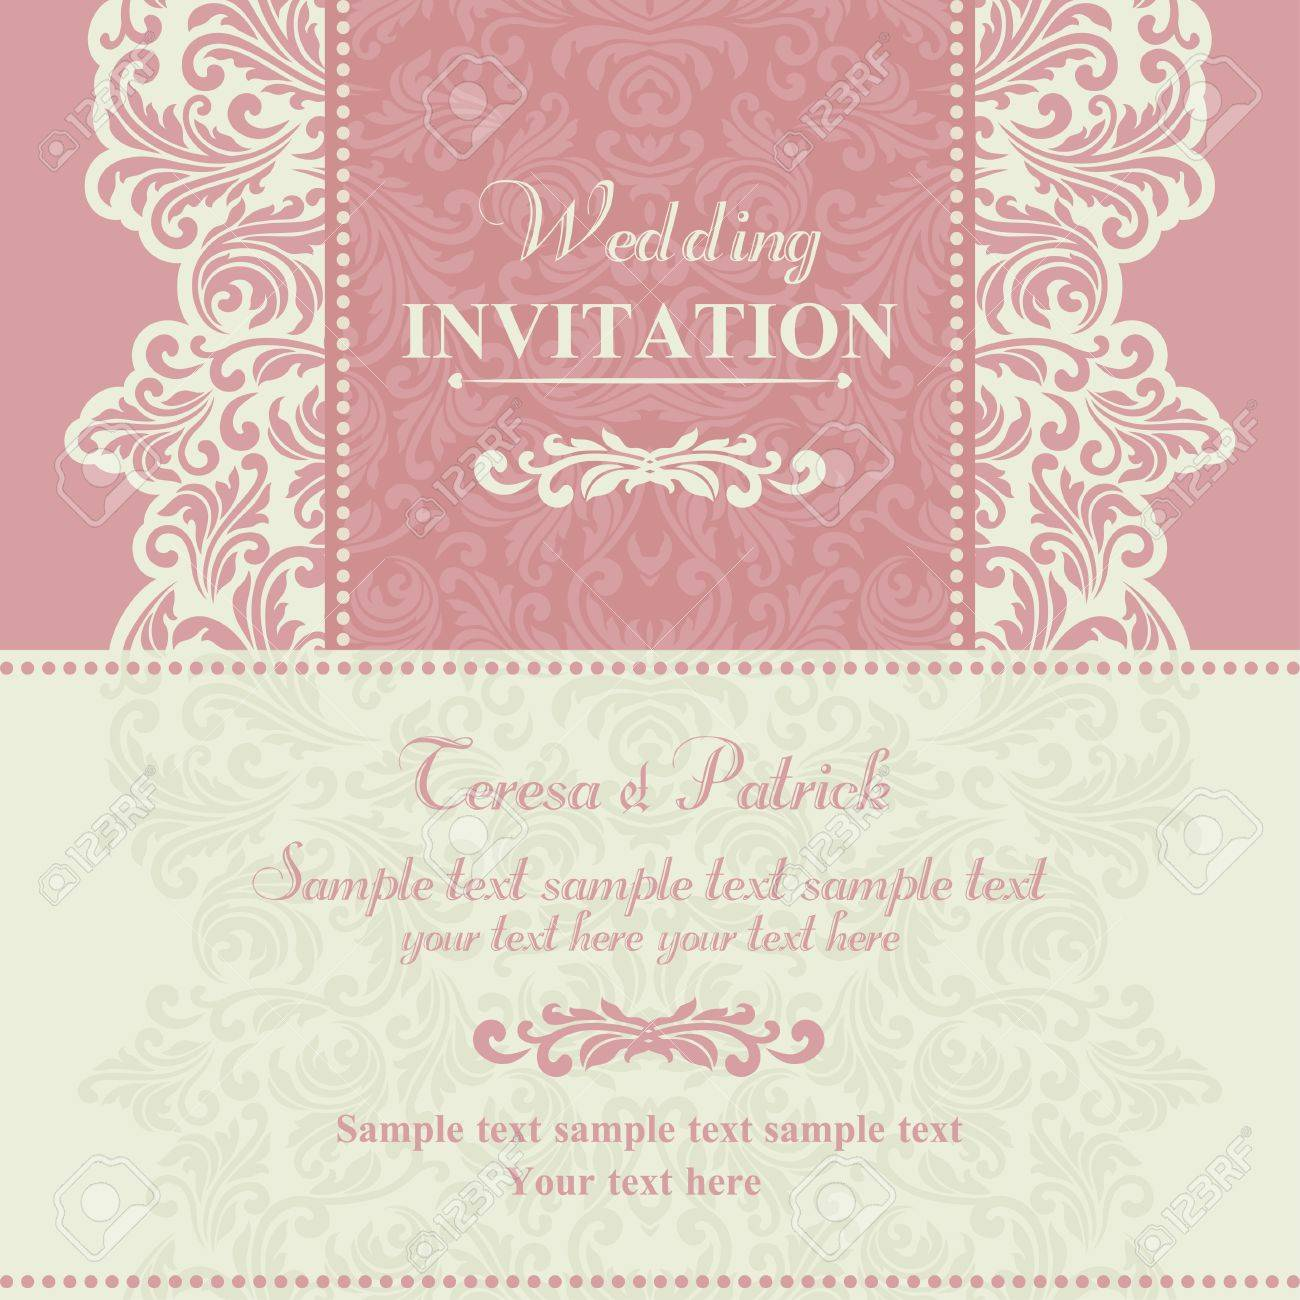 Baroque wedding invitation card in old fashioned style pink baroque wedding invitation card in old fashioned style pink and beige stock vector stopboris Choice Image